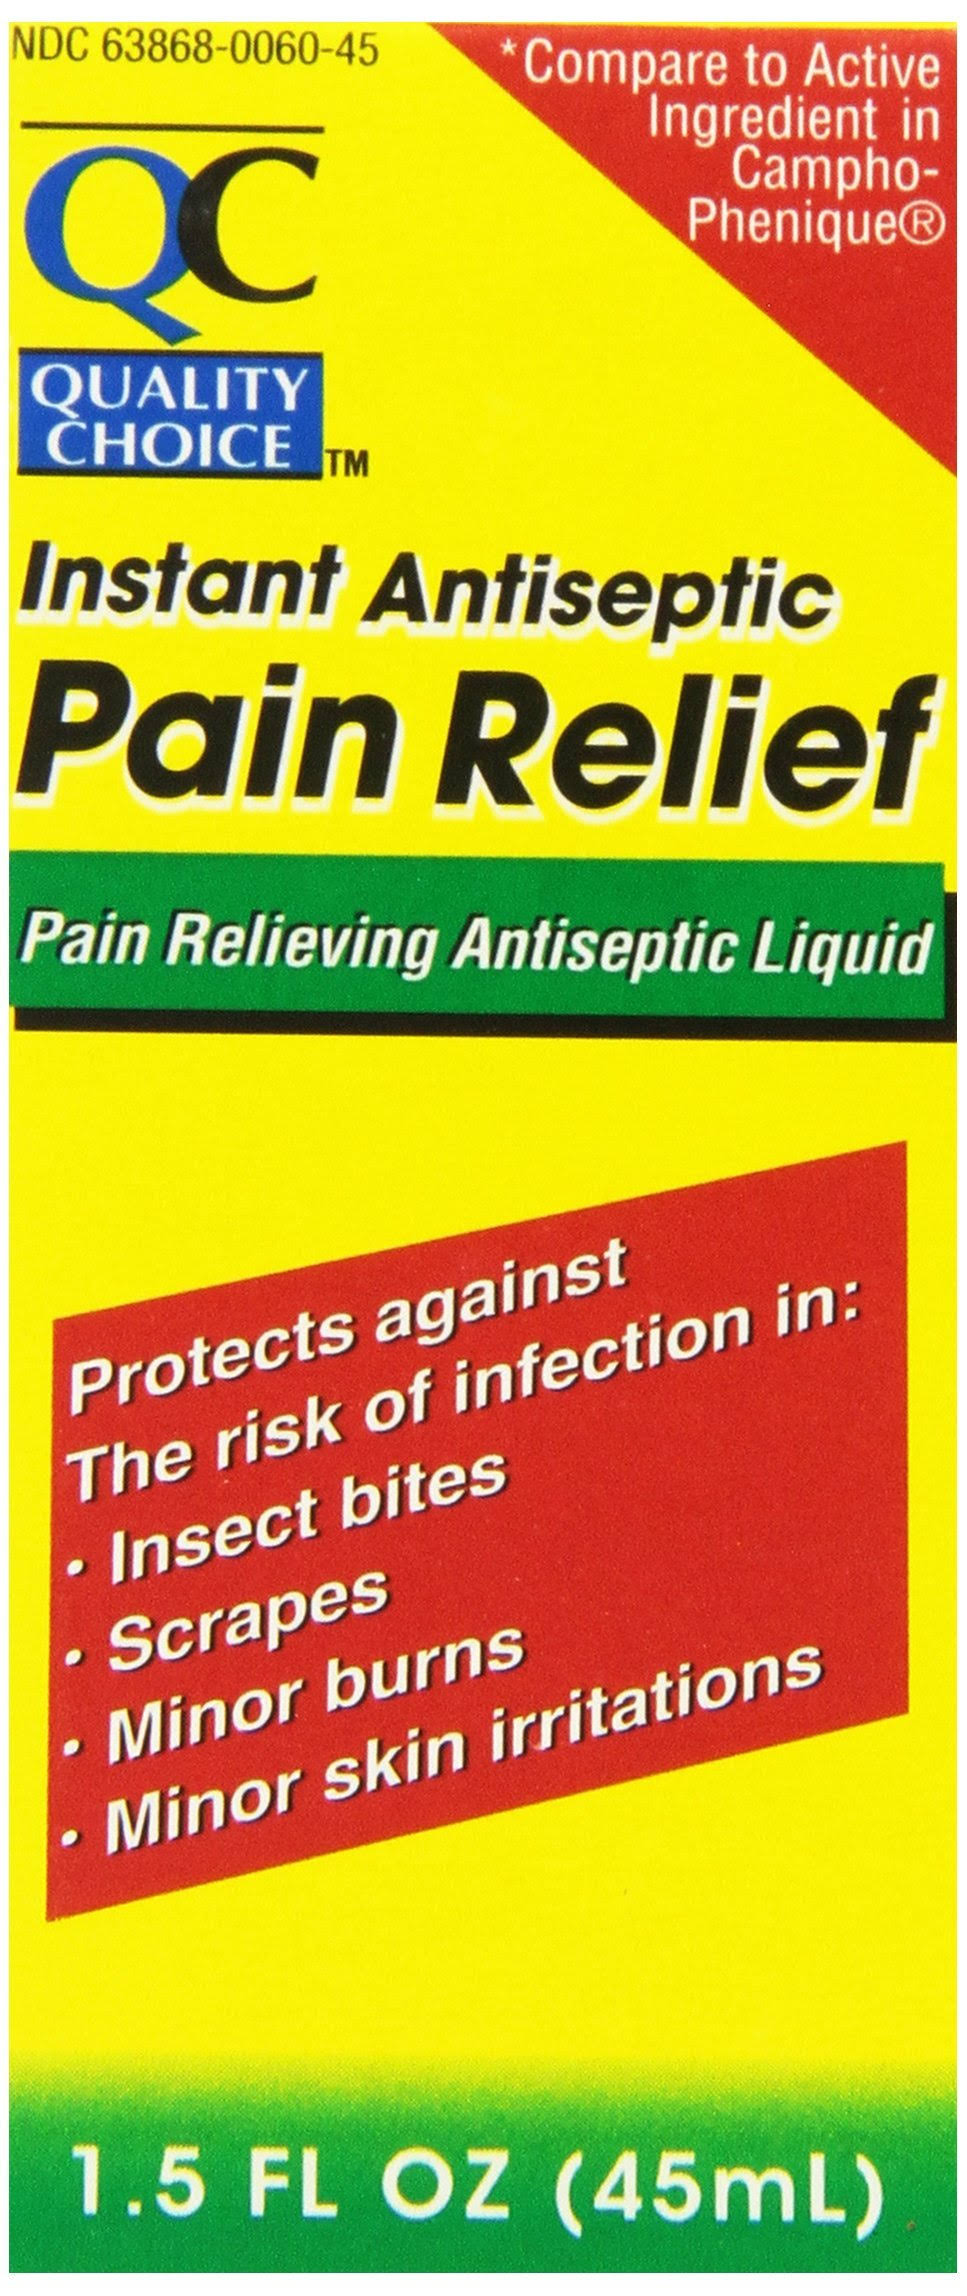 Quality Choice Instant Antiseptic Pain Relief Liquid - 45ml